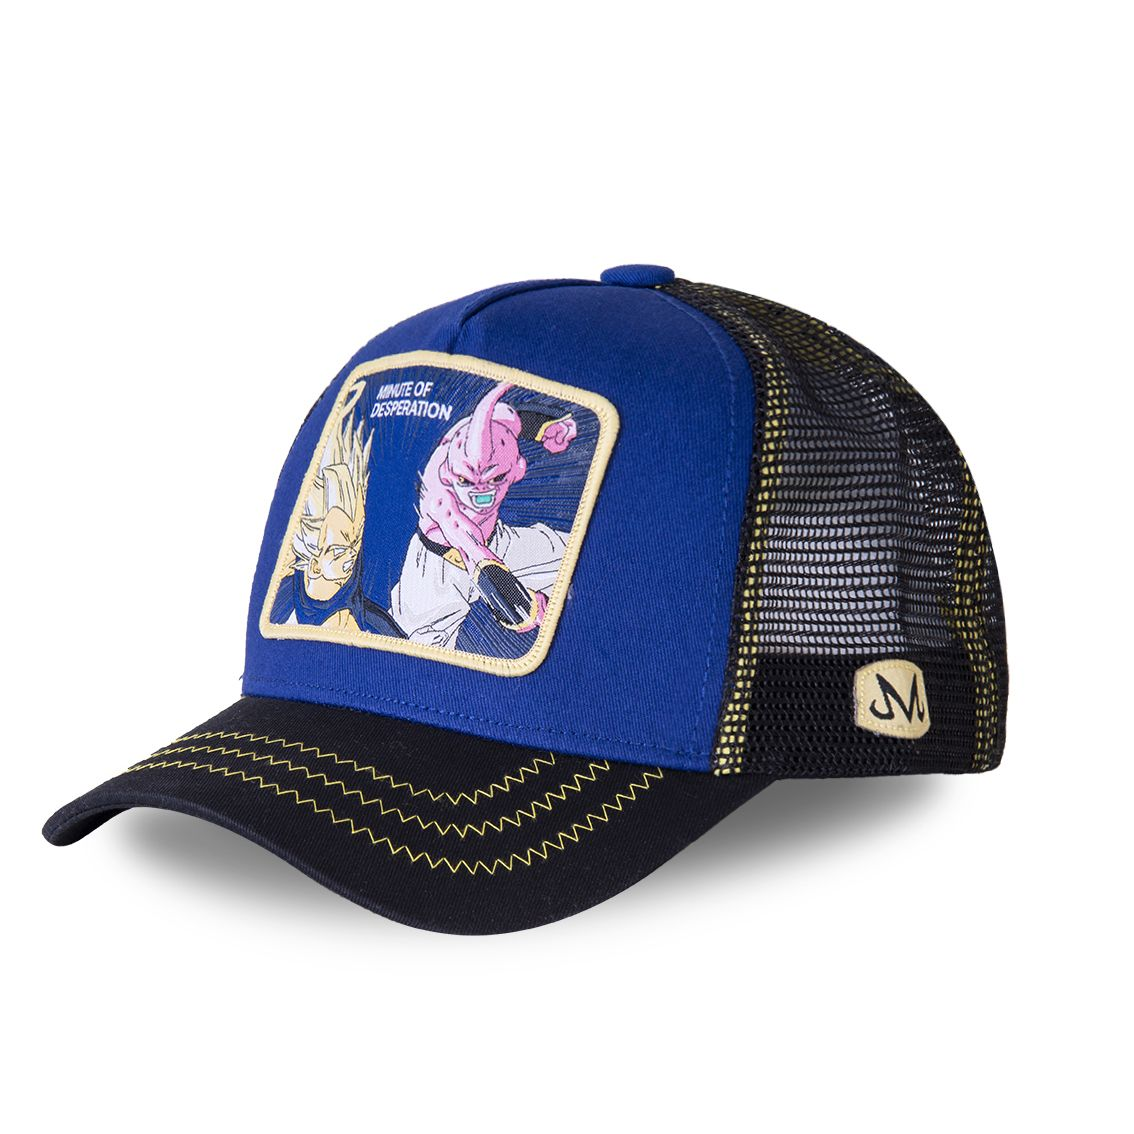 Casquette capslab dragon ball z desperation bleu (photo)